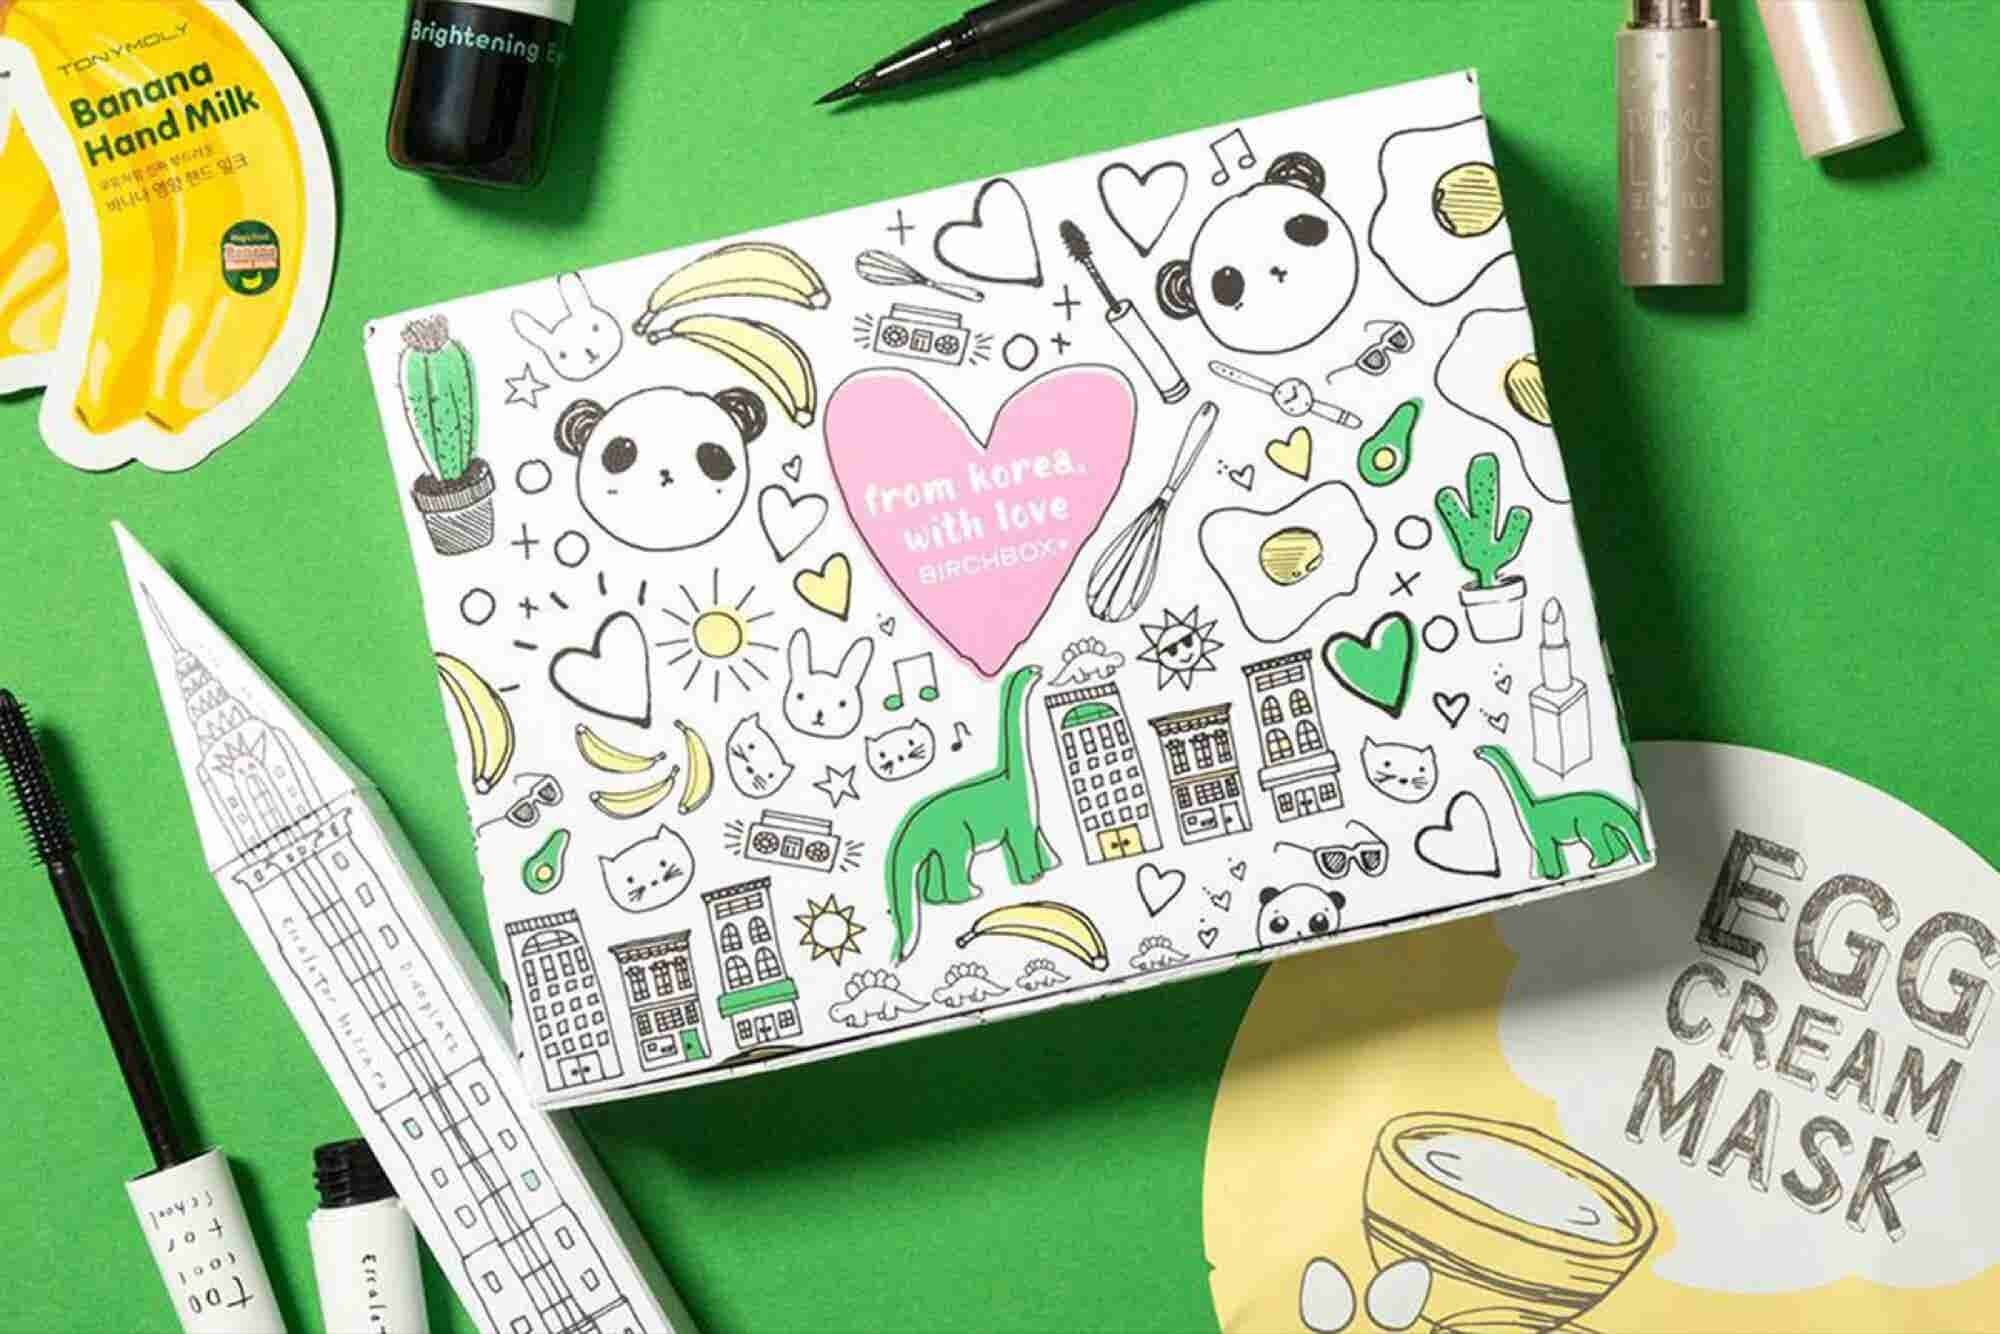 So Your Subscription Box Is Successful - Here's What to Do Next